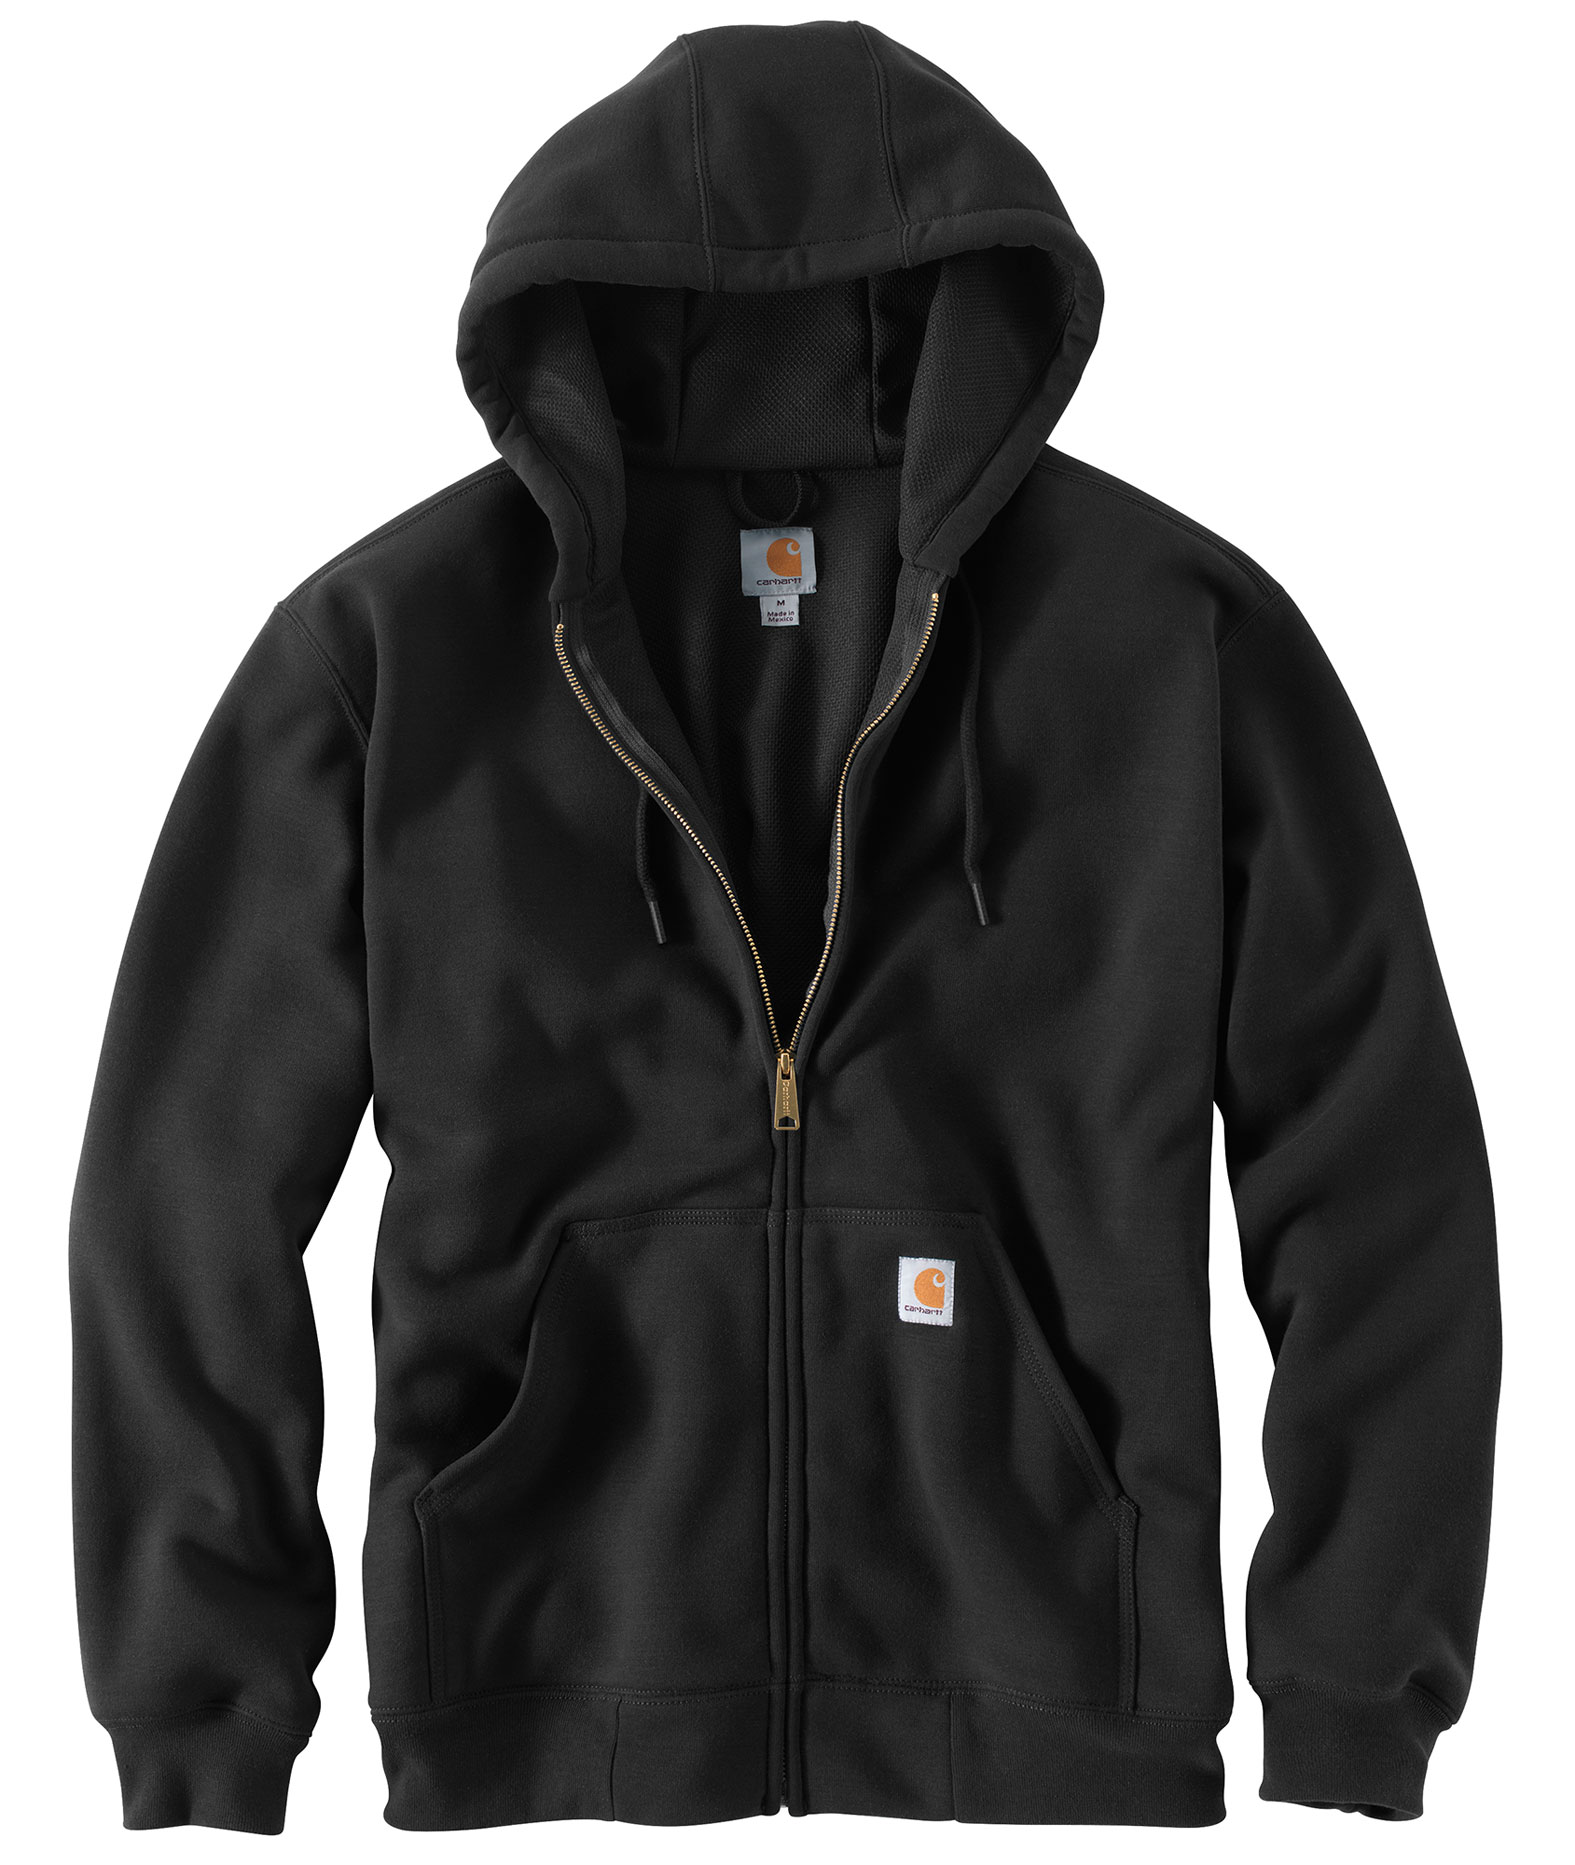 Carhartt Mens Rutland Thermal Lined Hooded Sweatshirt